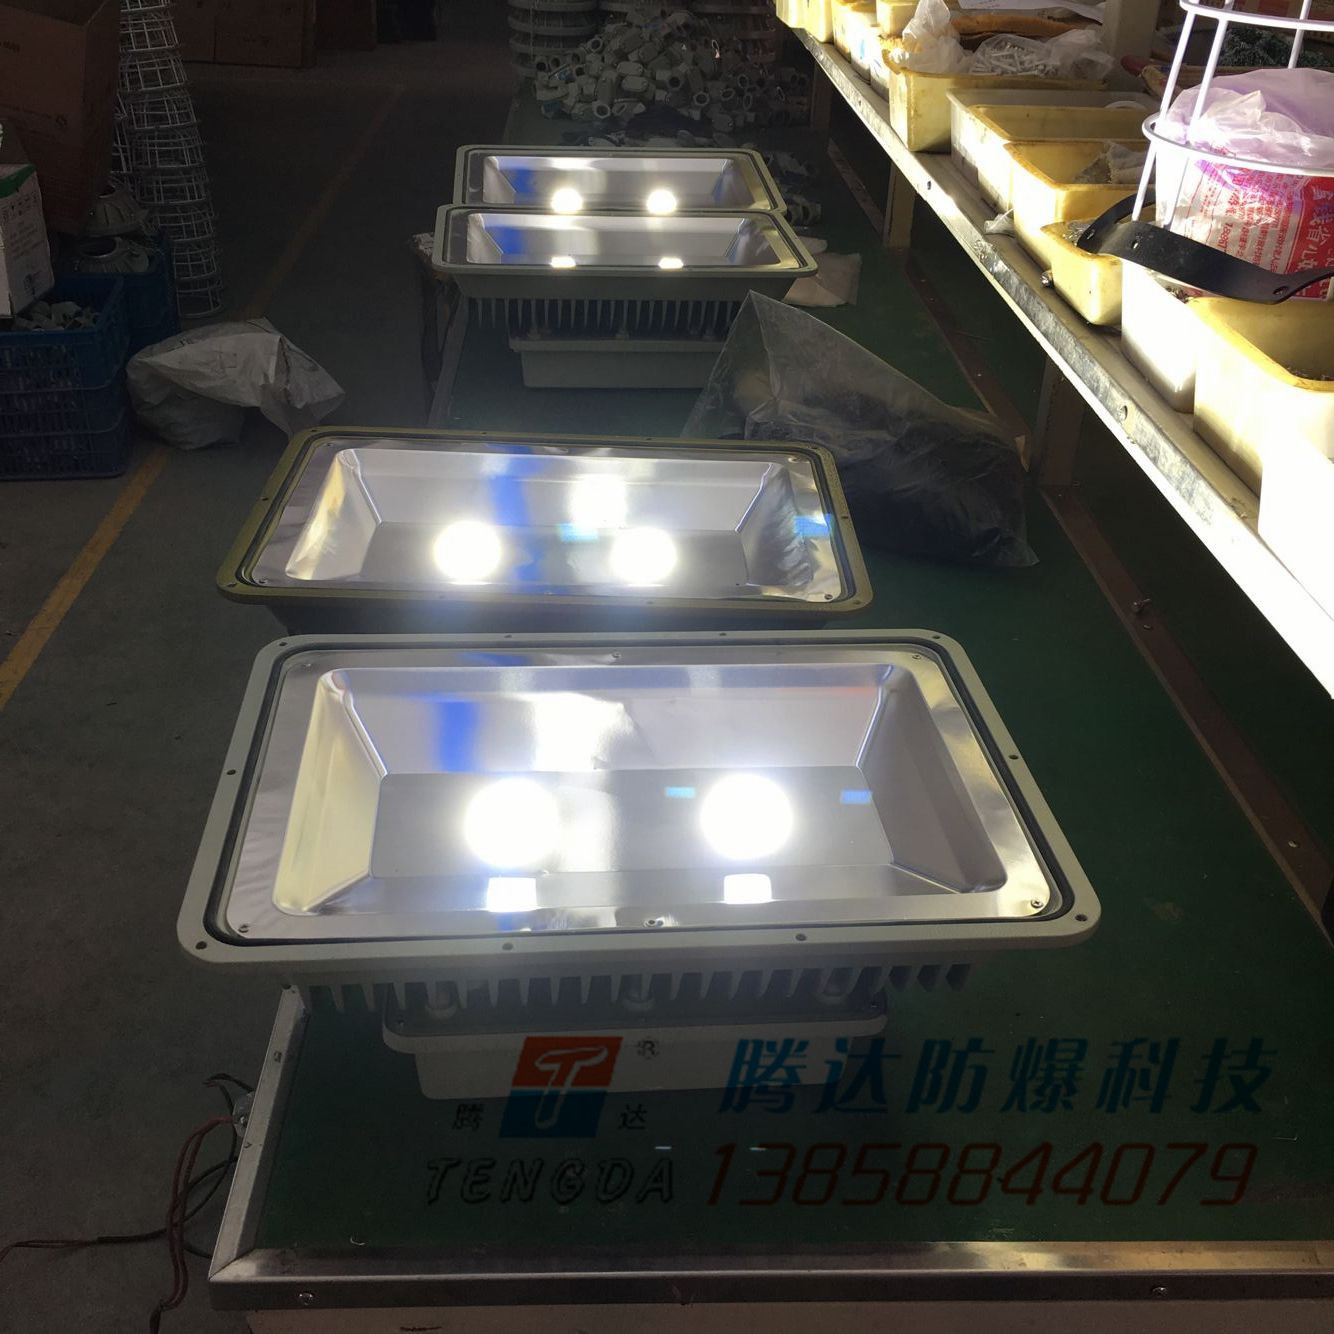 Kaiwo LED Patch Type Explosion-proof Light, Explosion-proof Spotlights Ccdex, Zhejiang Explosion-proof Spotlights Manufacturers